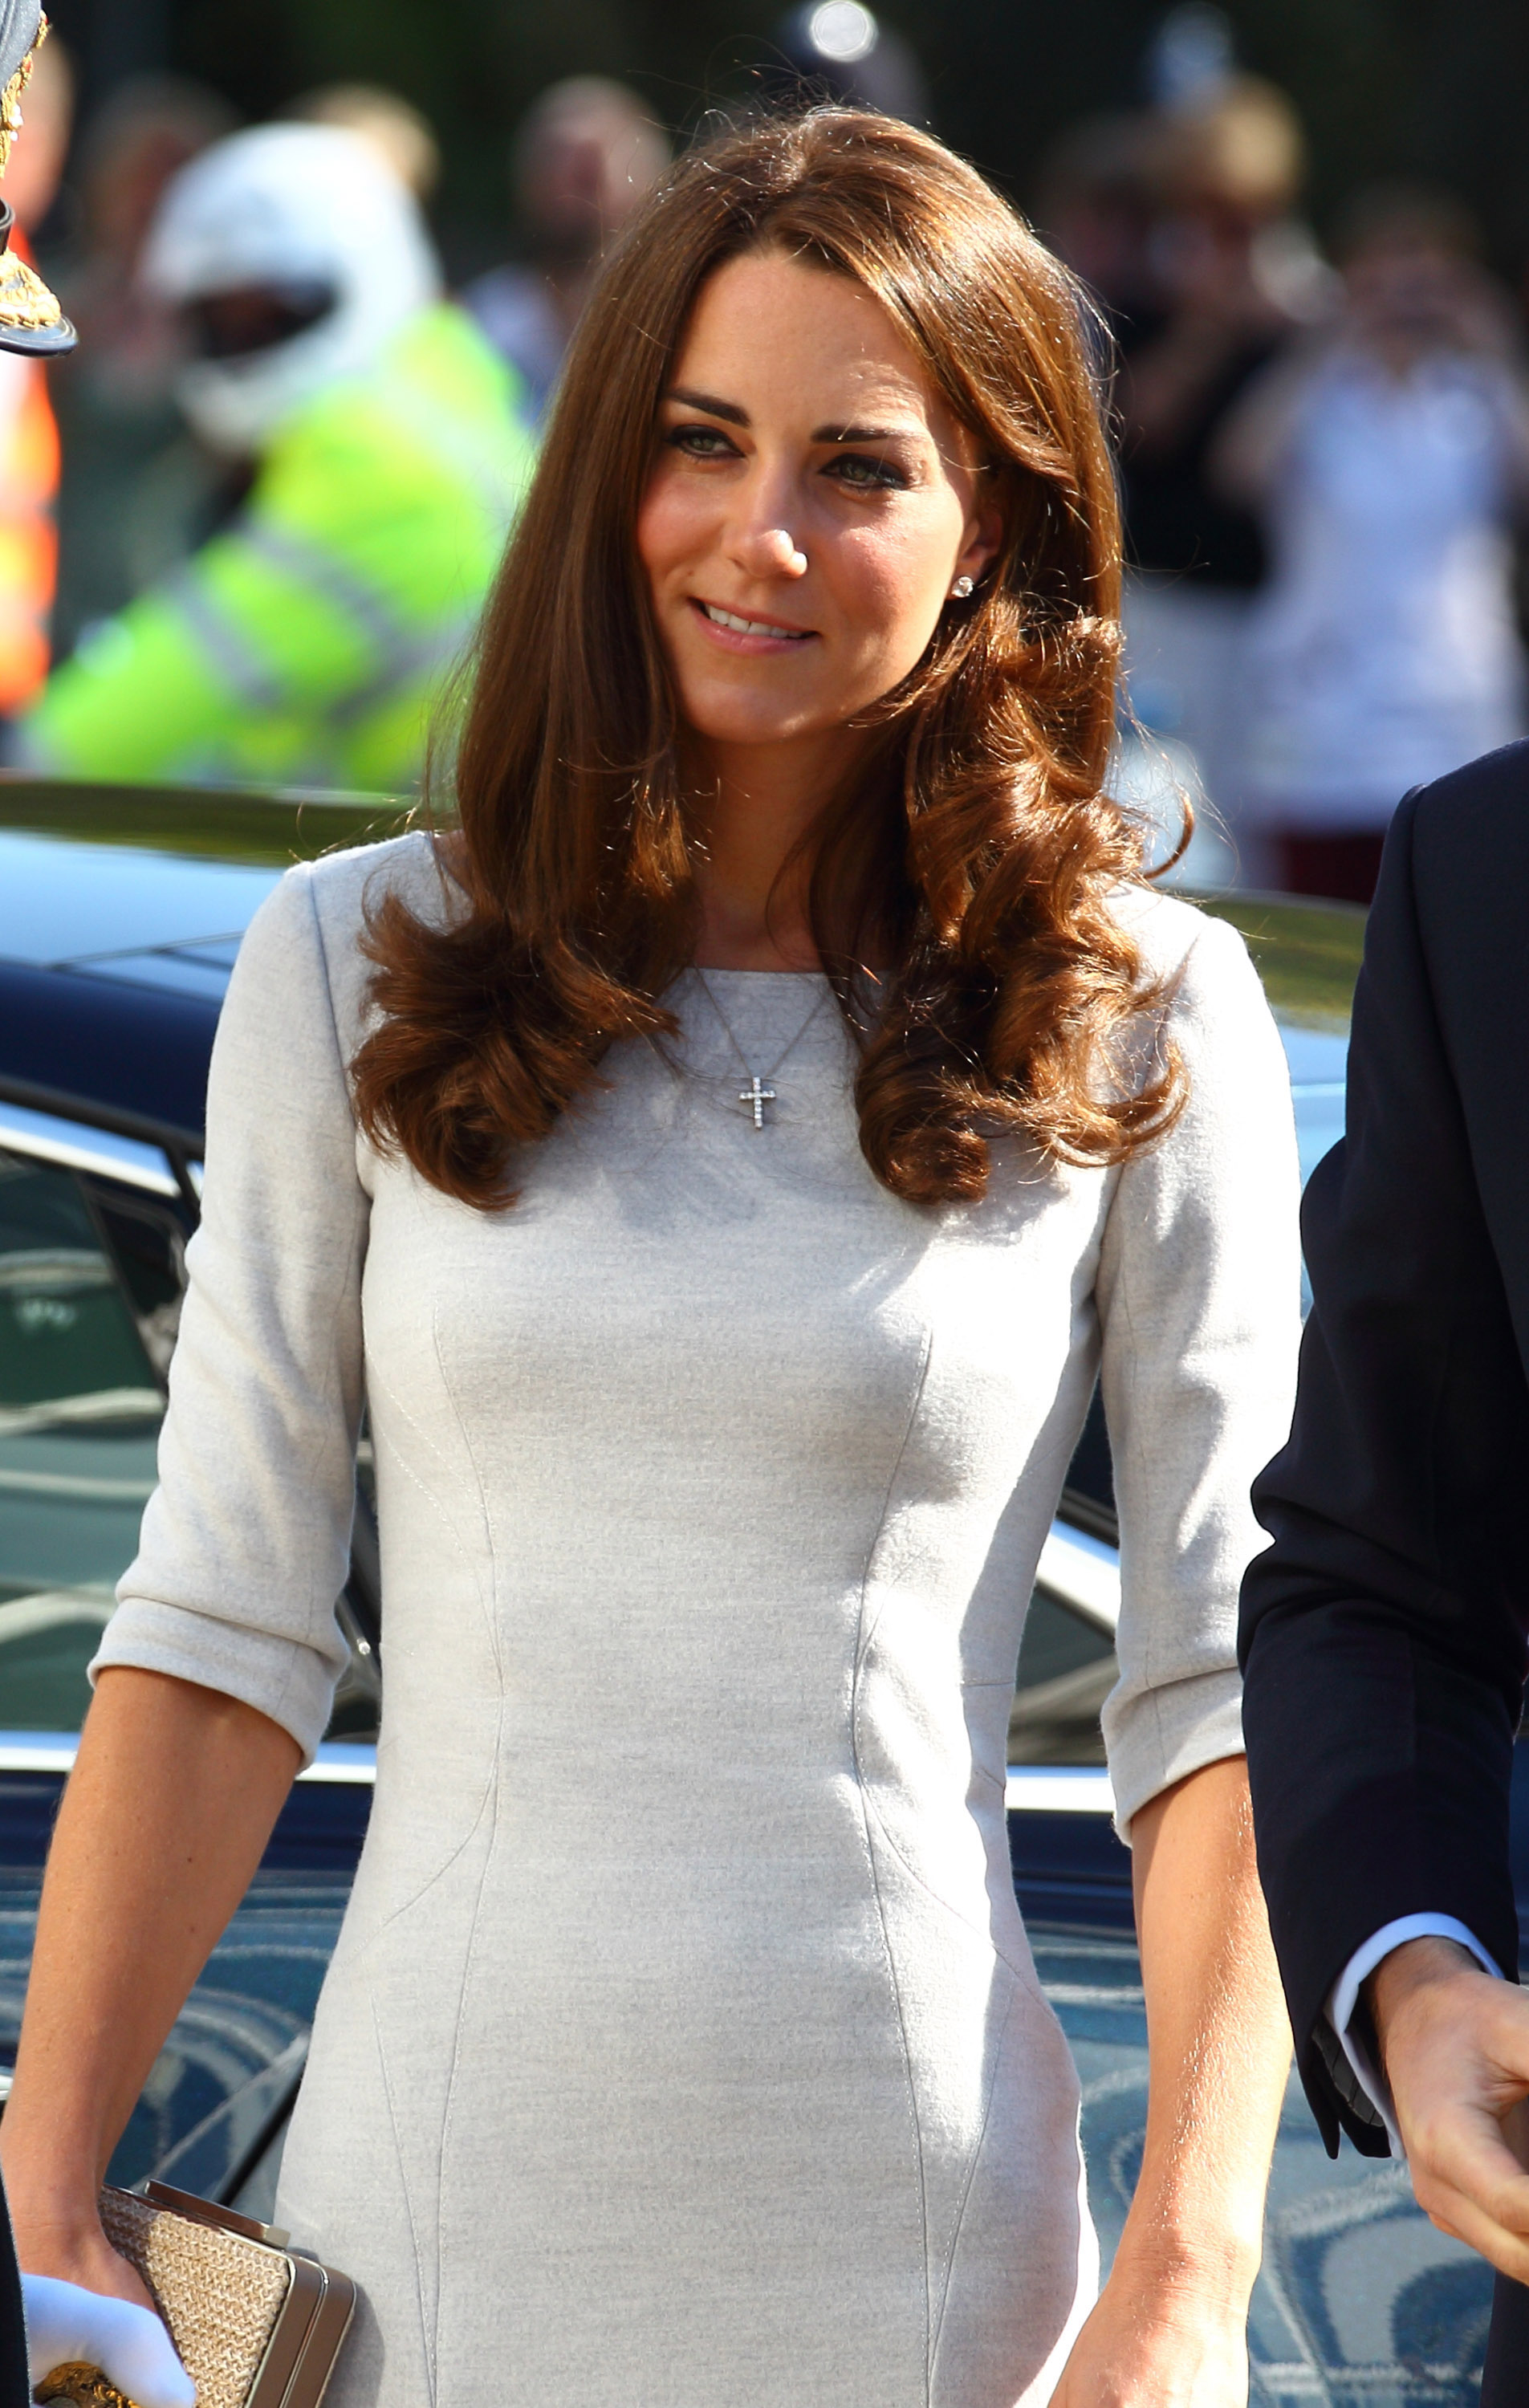 Kate Middleton visited a hospital in London.